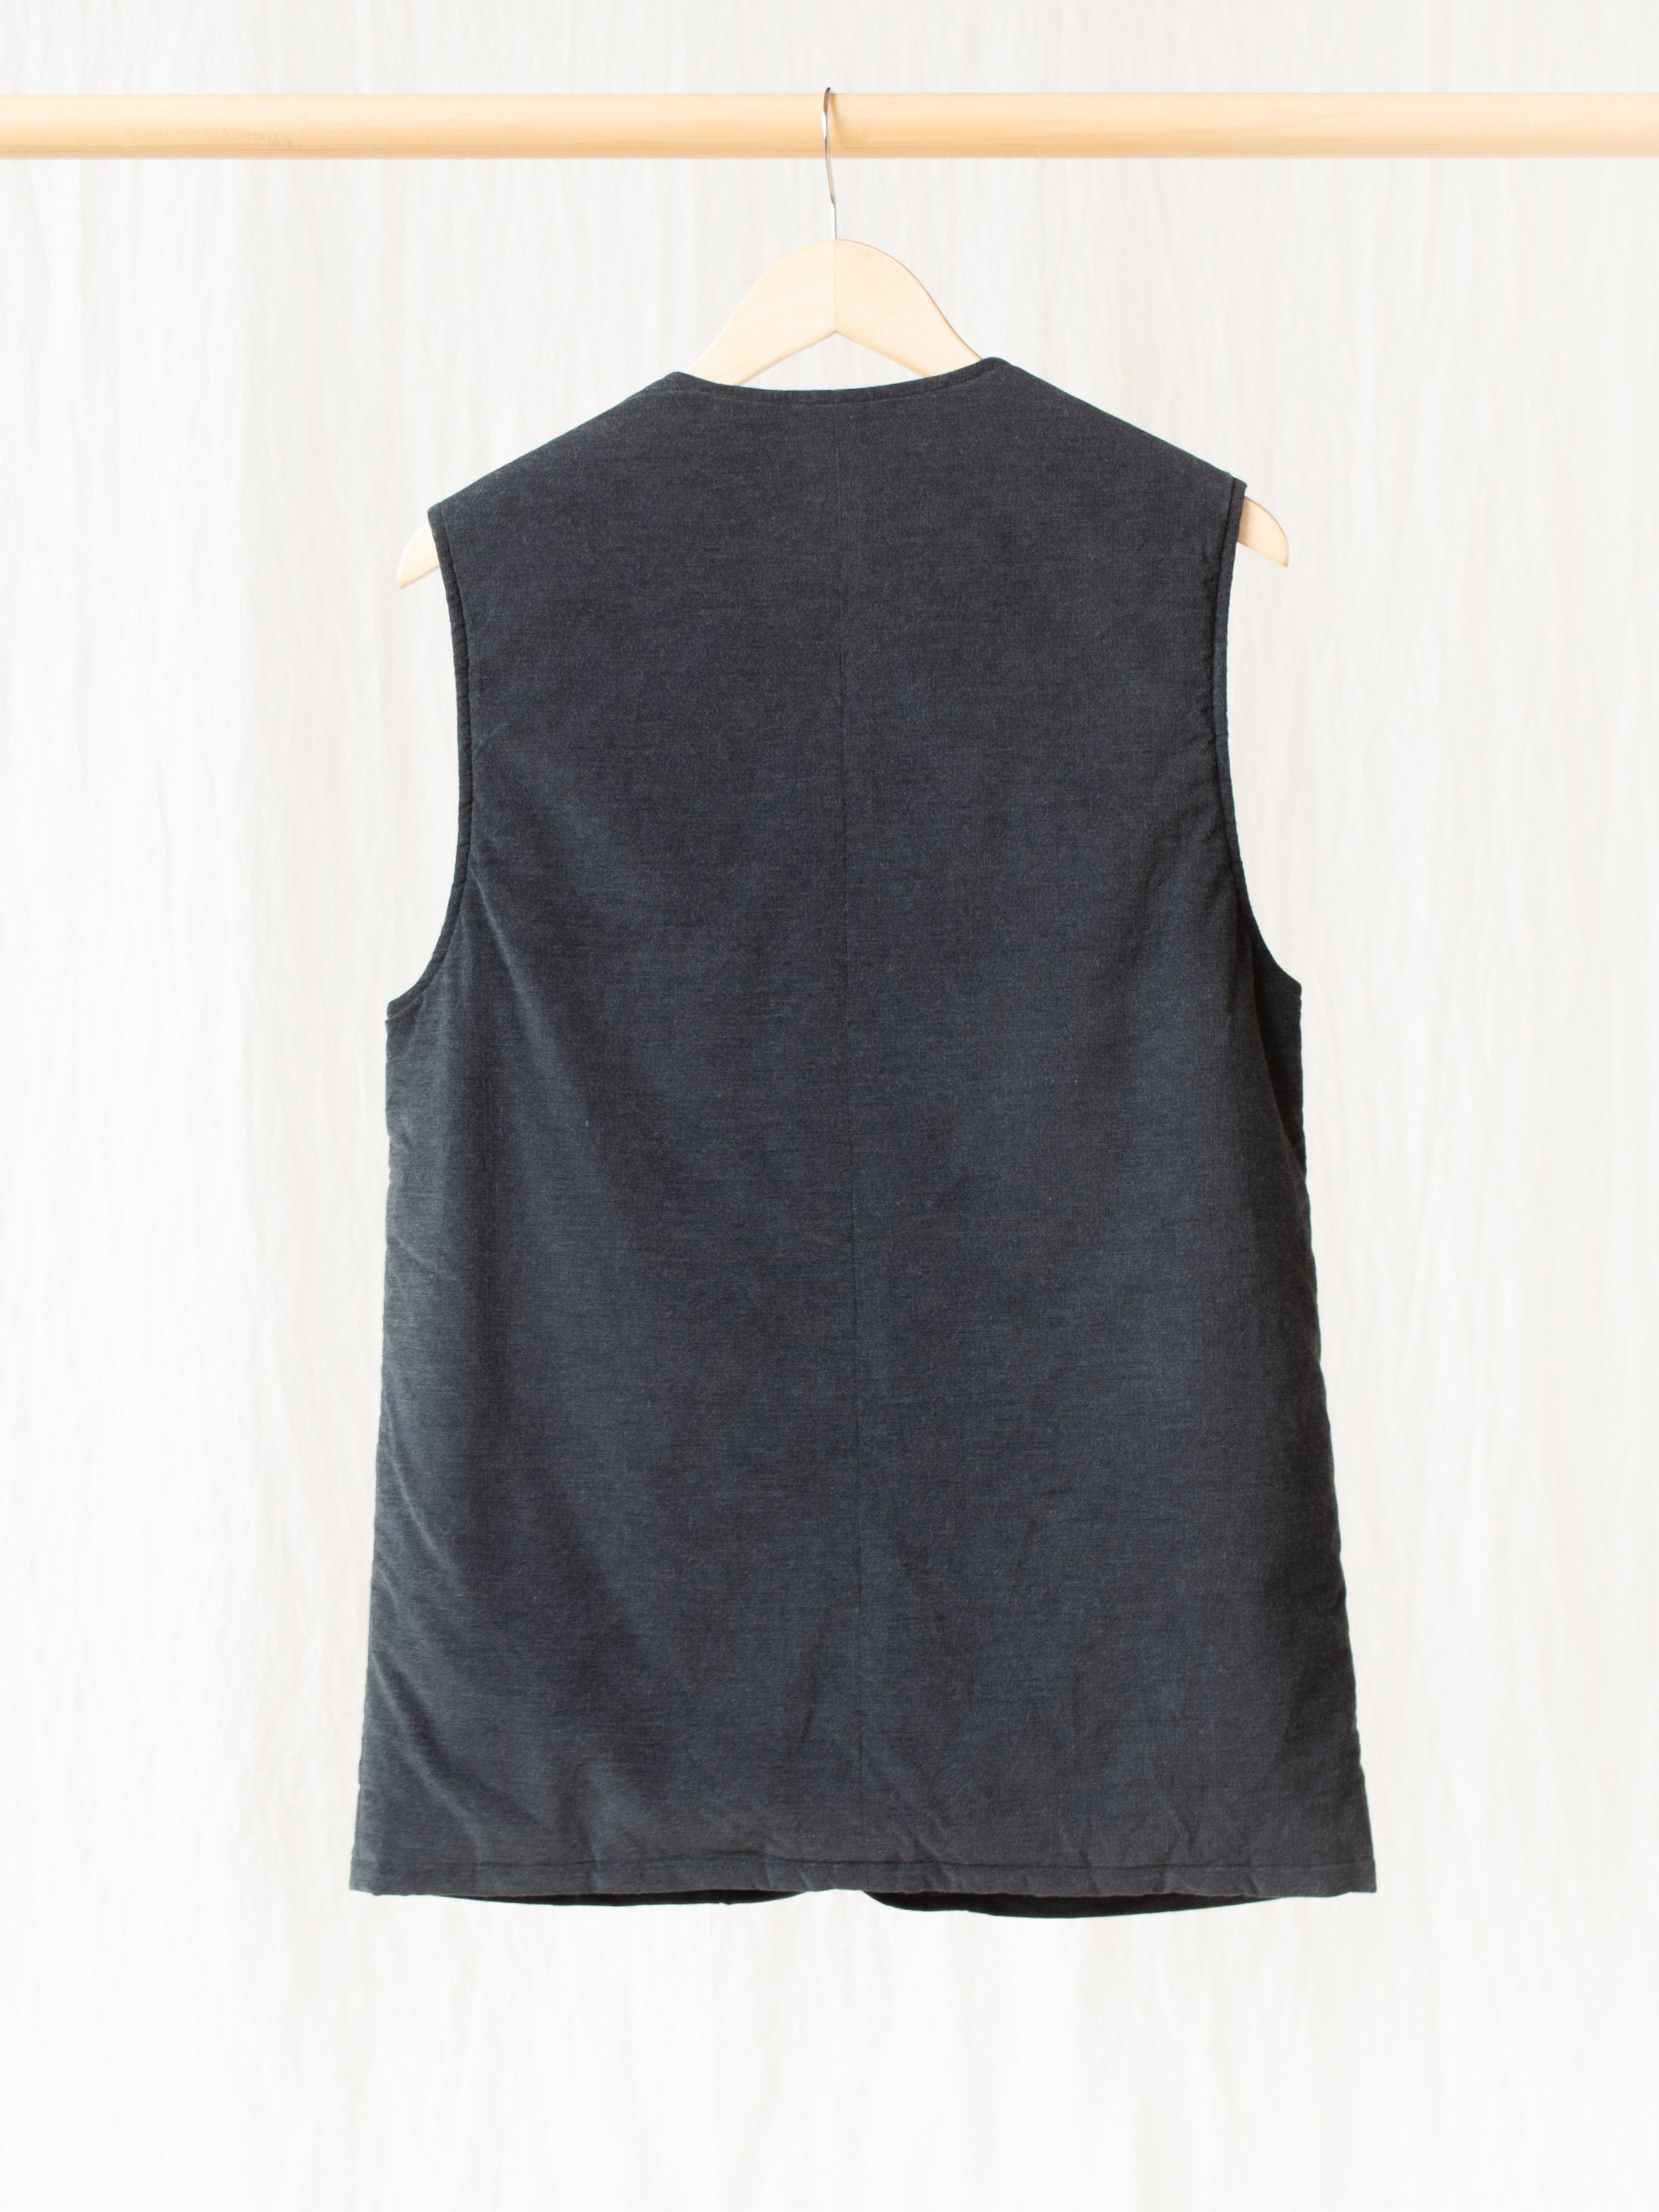 Padded Long Vest - Charcoal Corduroy Wale